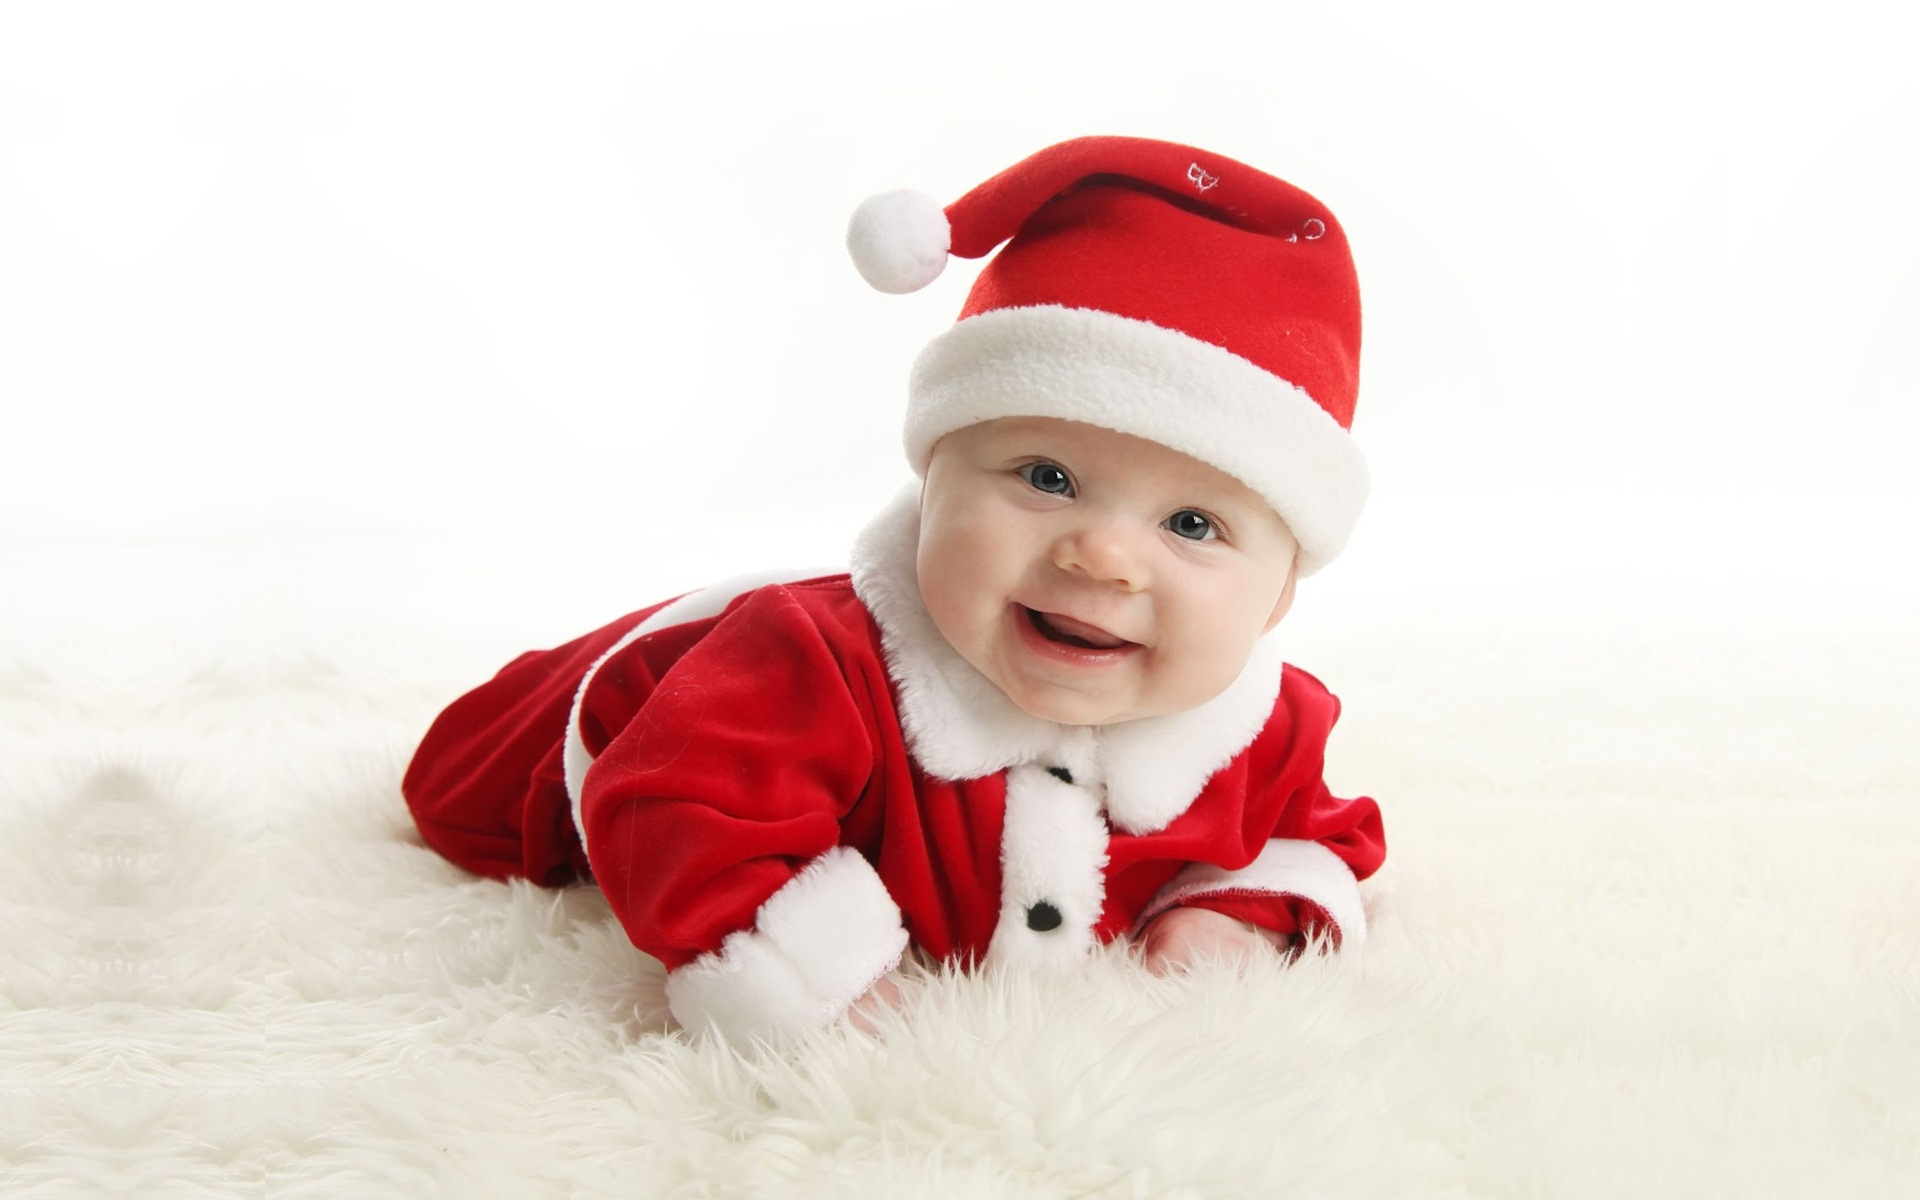 Christmas Baby Full HD Wallpaper And Background Image